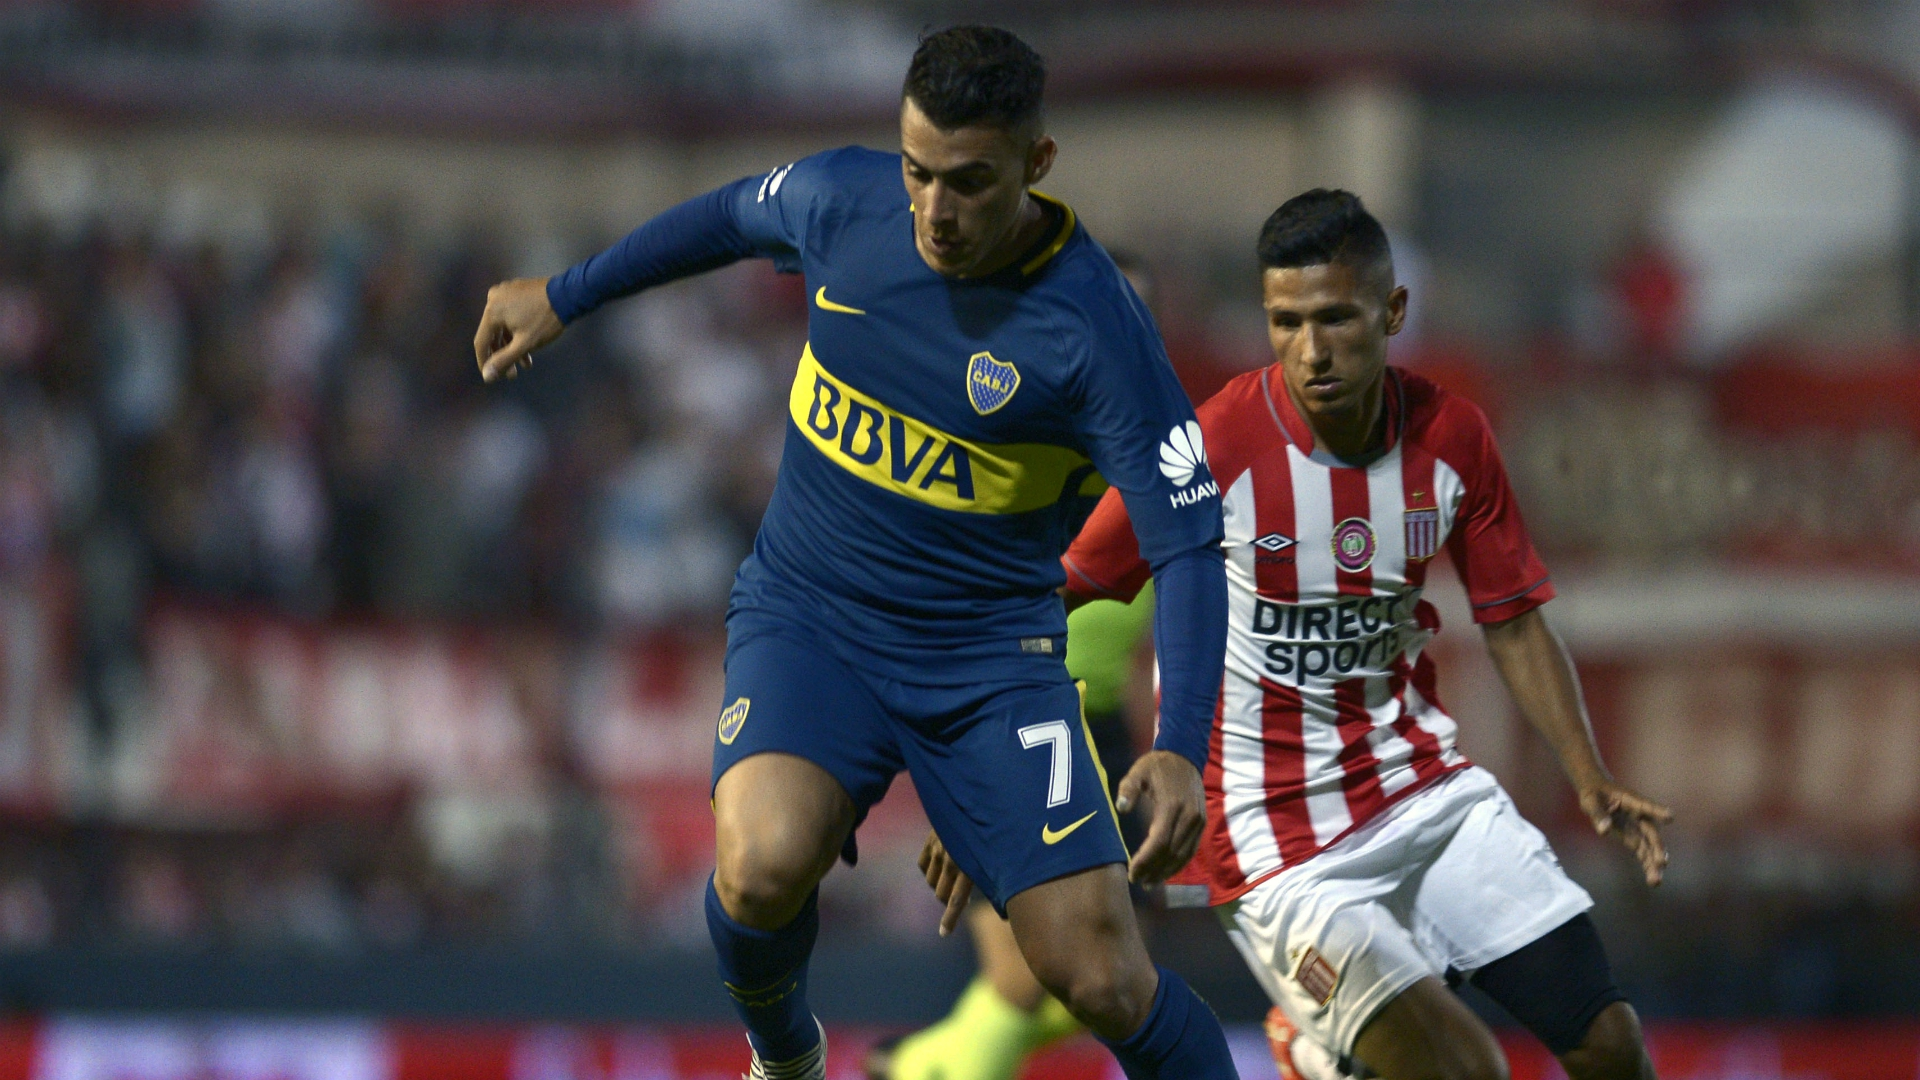 Cristian David Pavon Boca Junior Estudiantes Superliga 12102017